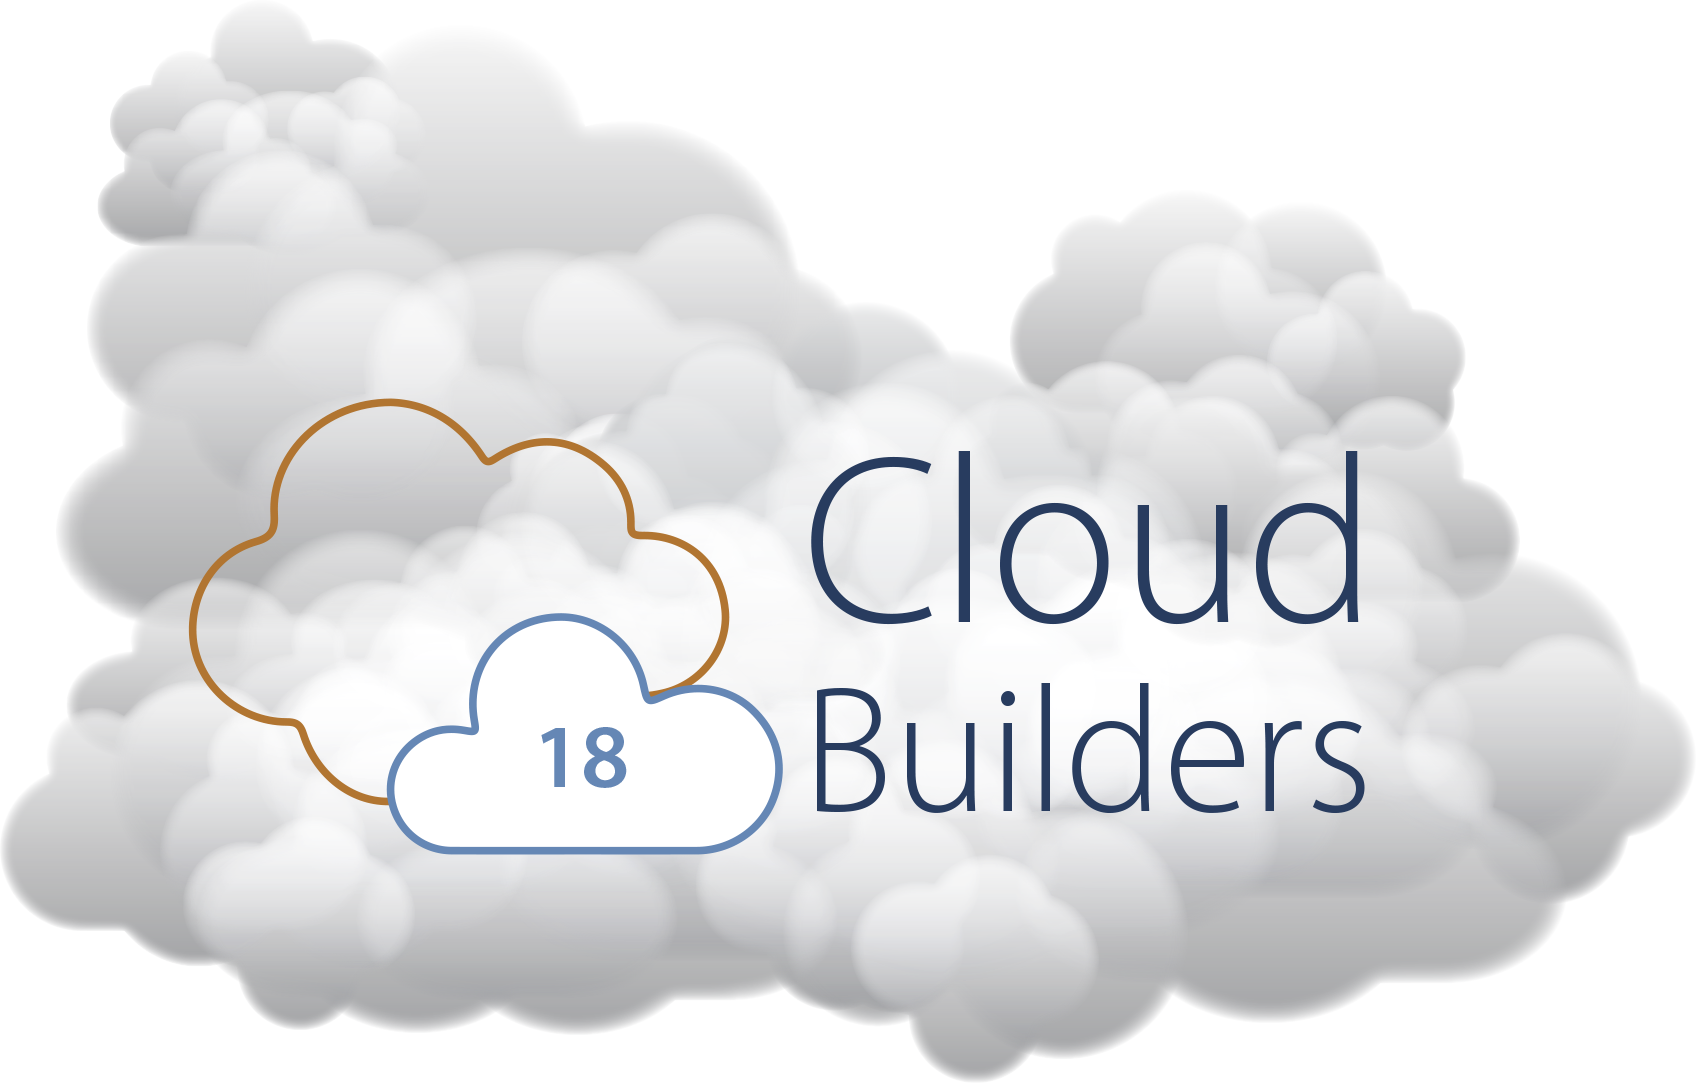 ACB-18-Clouds2.png